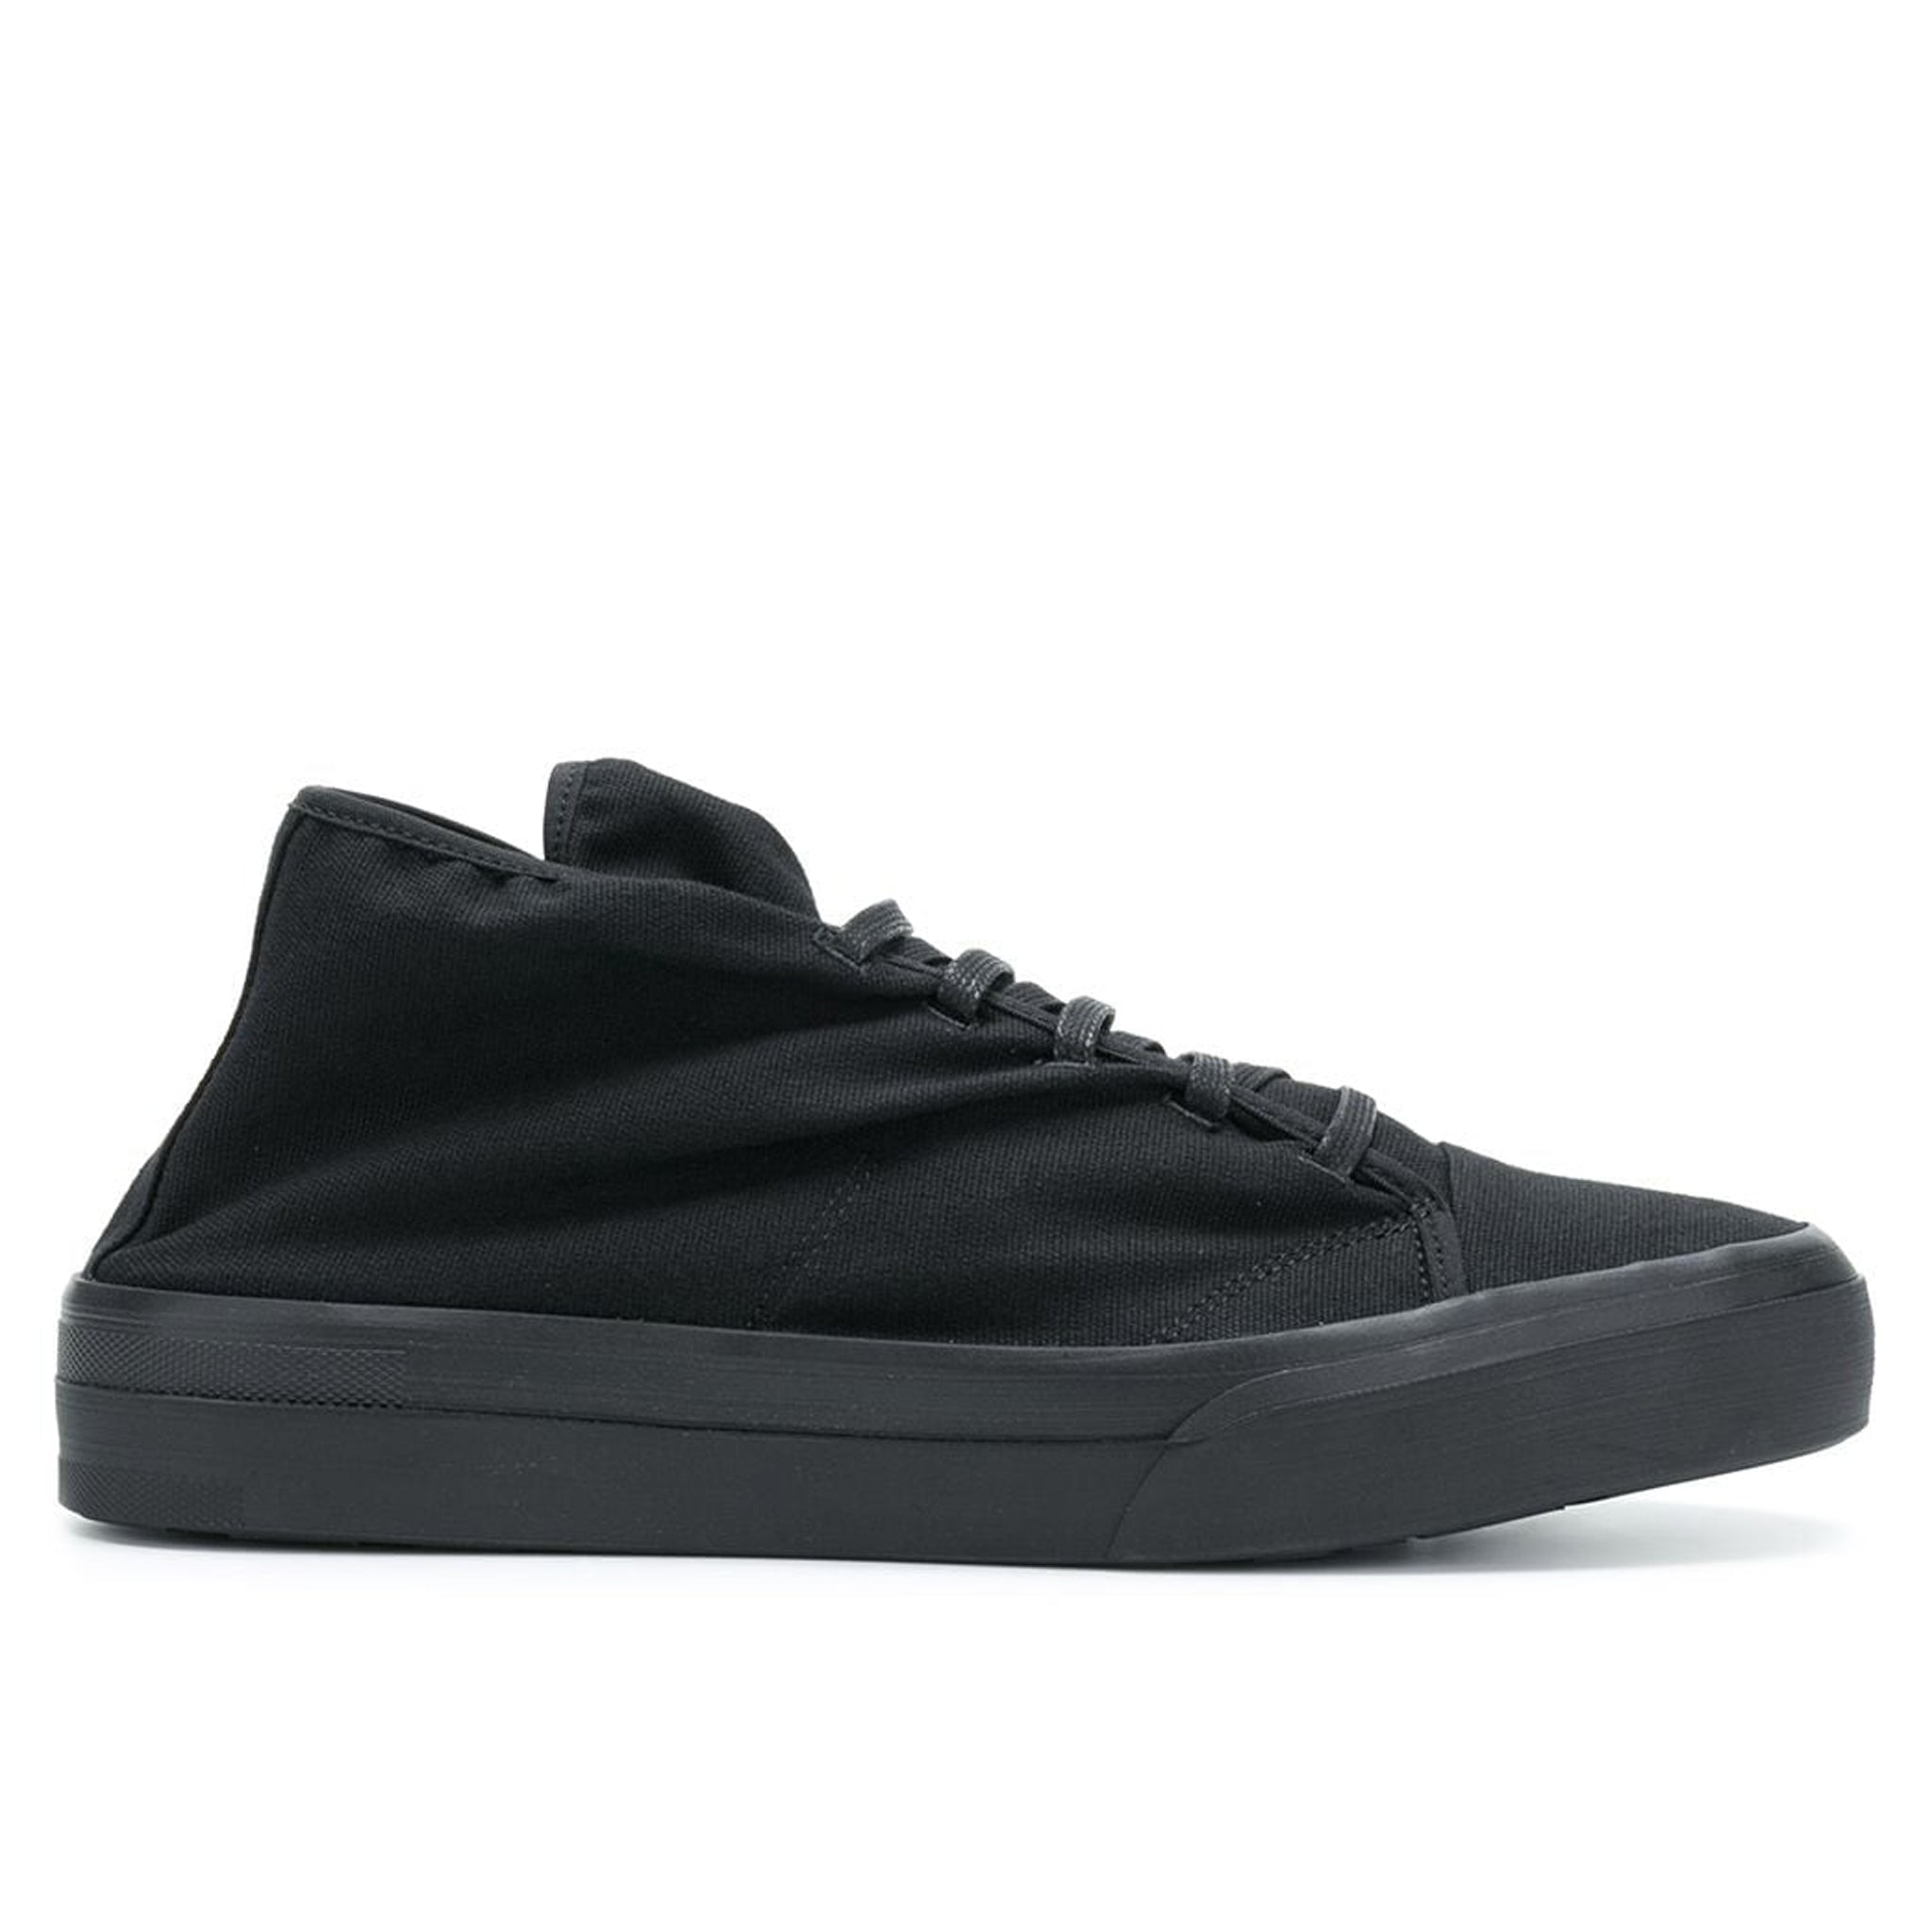 Jill Sander Canvas Sneakers